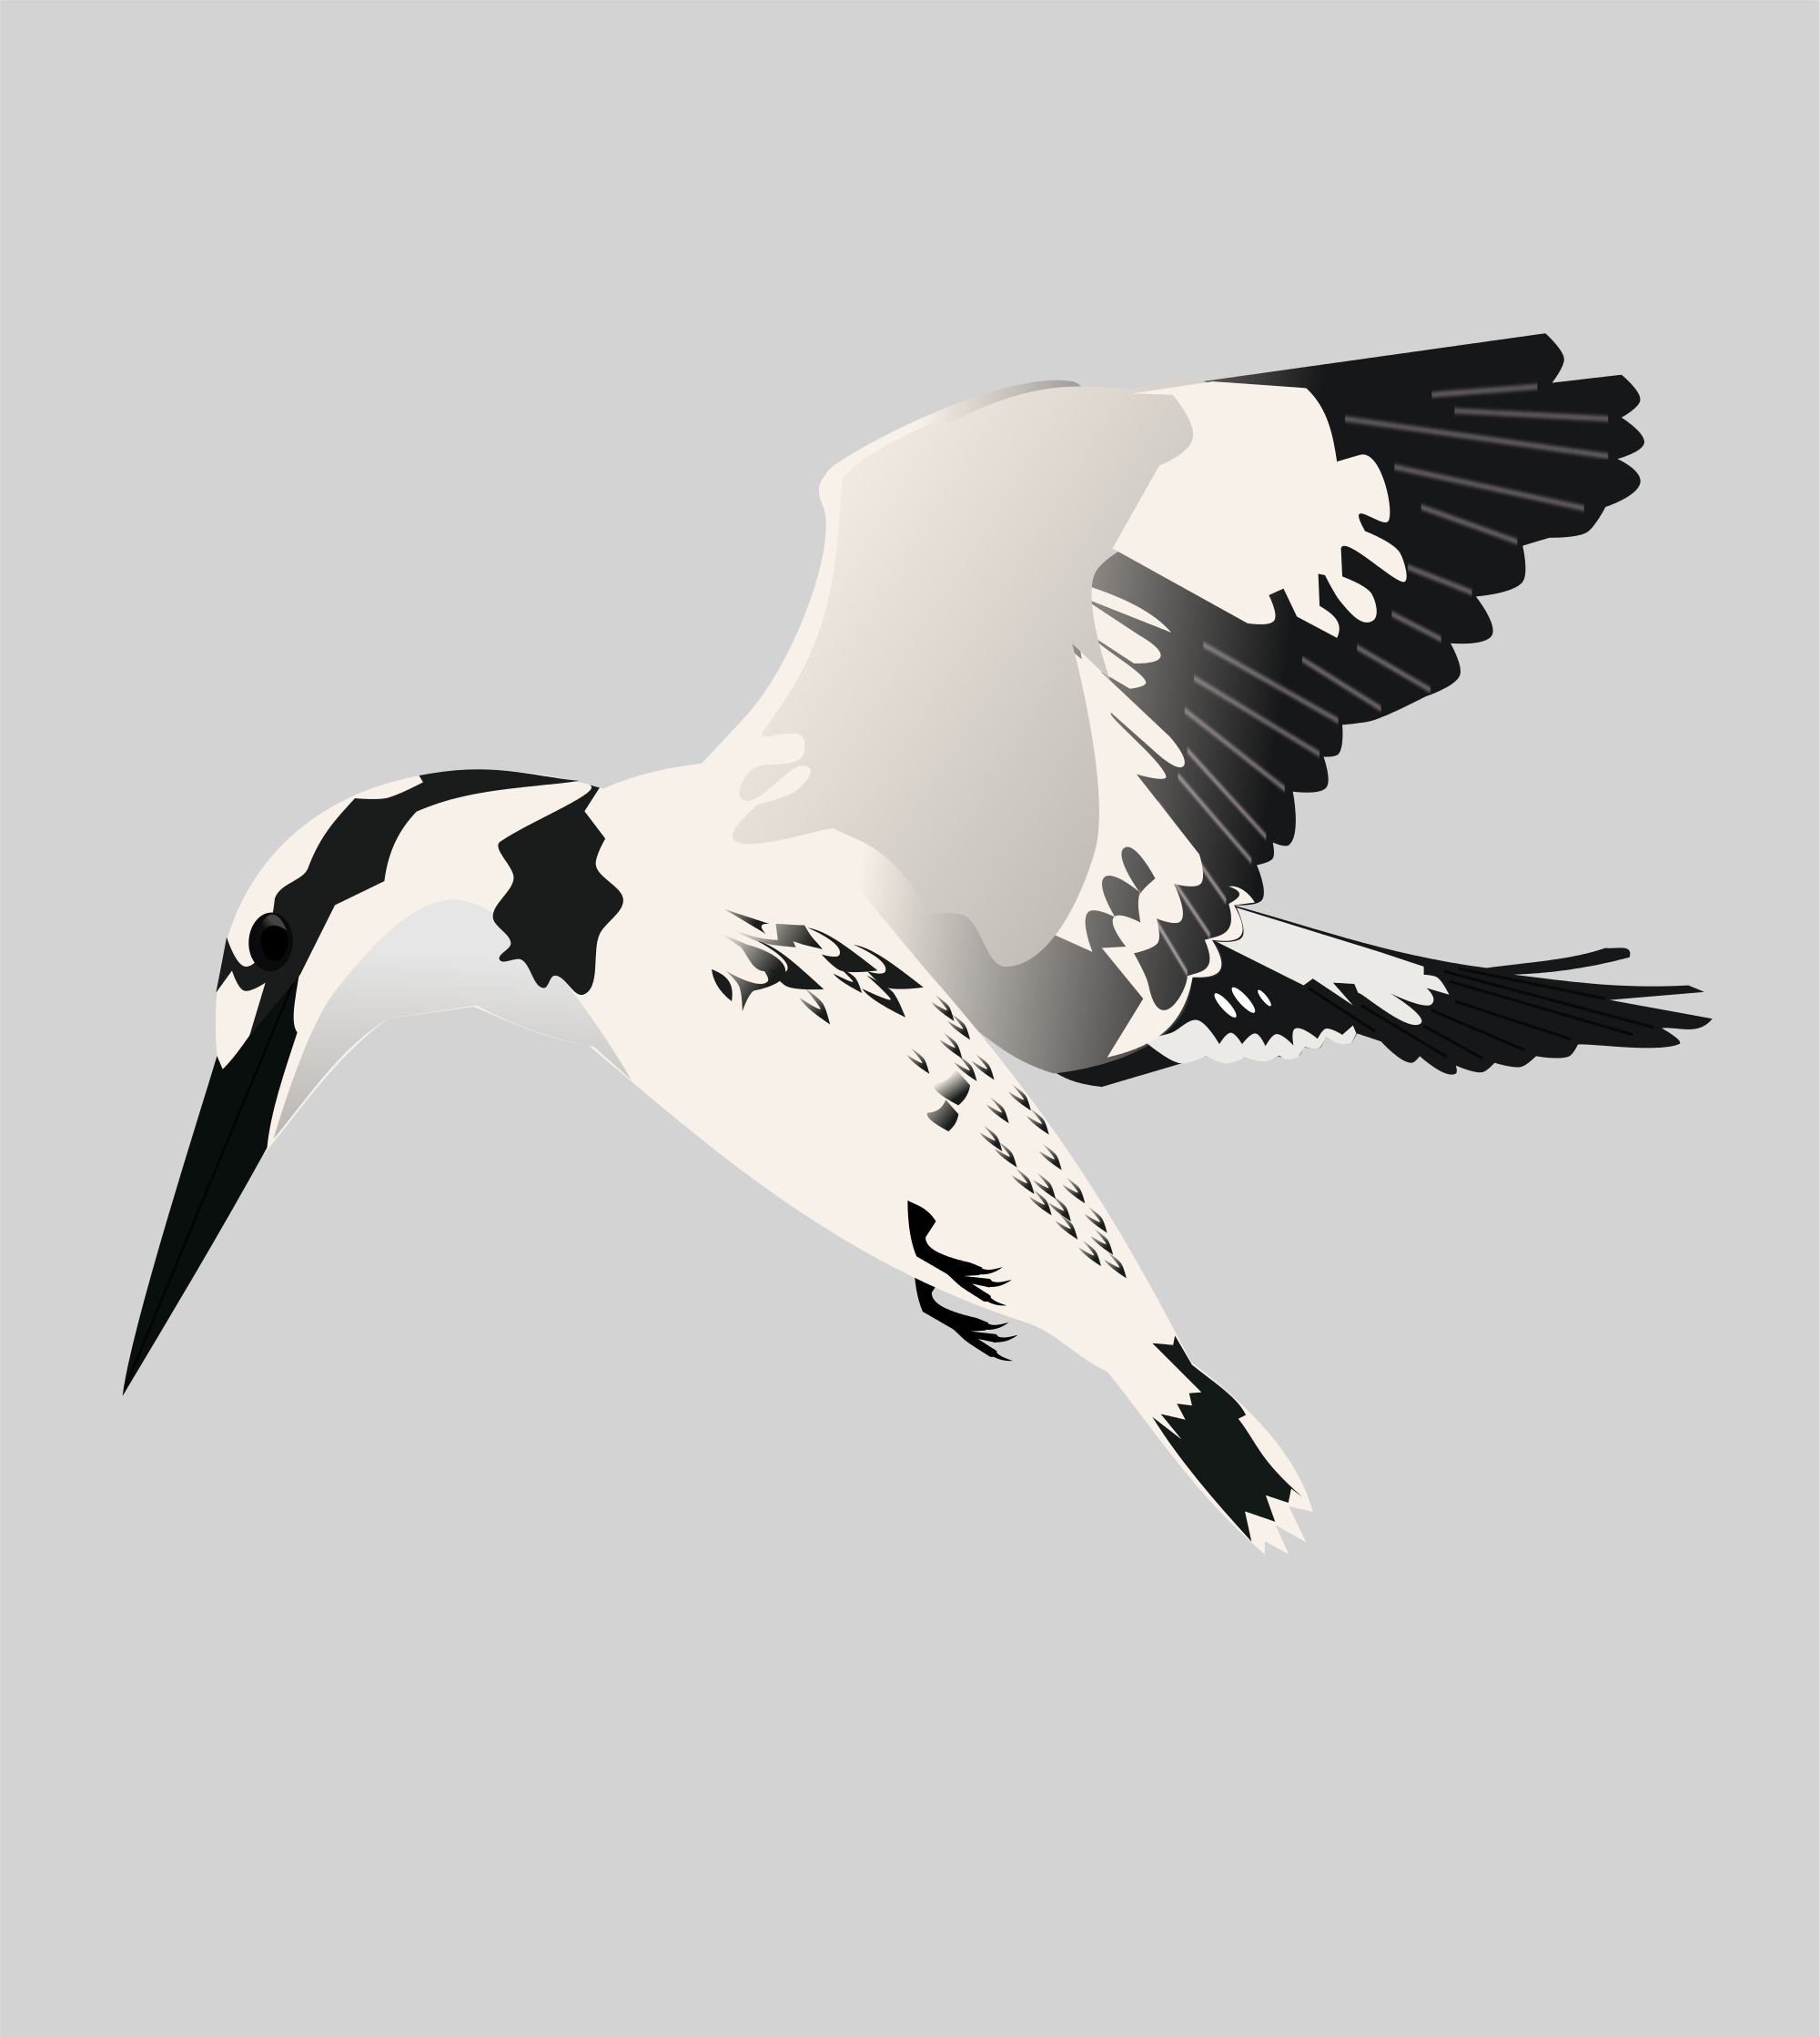 Kingfisher svg #14, Download drawings